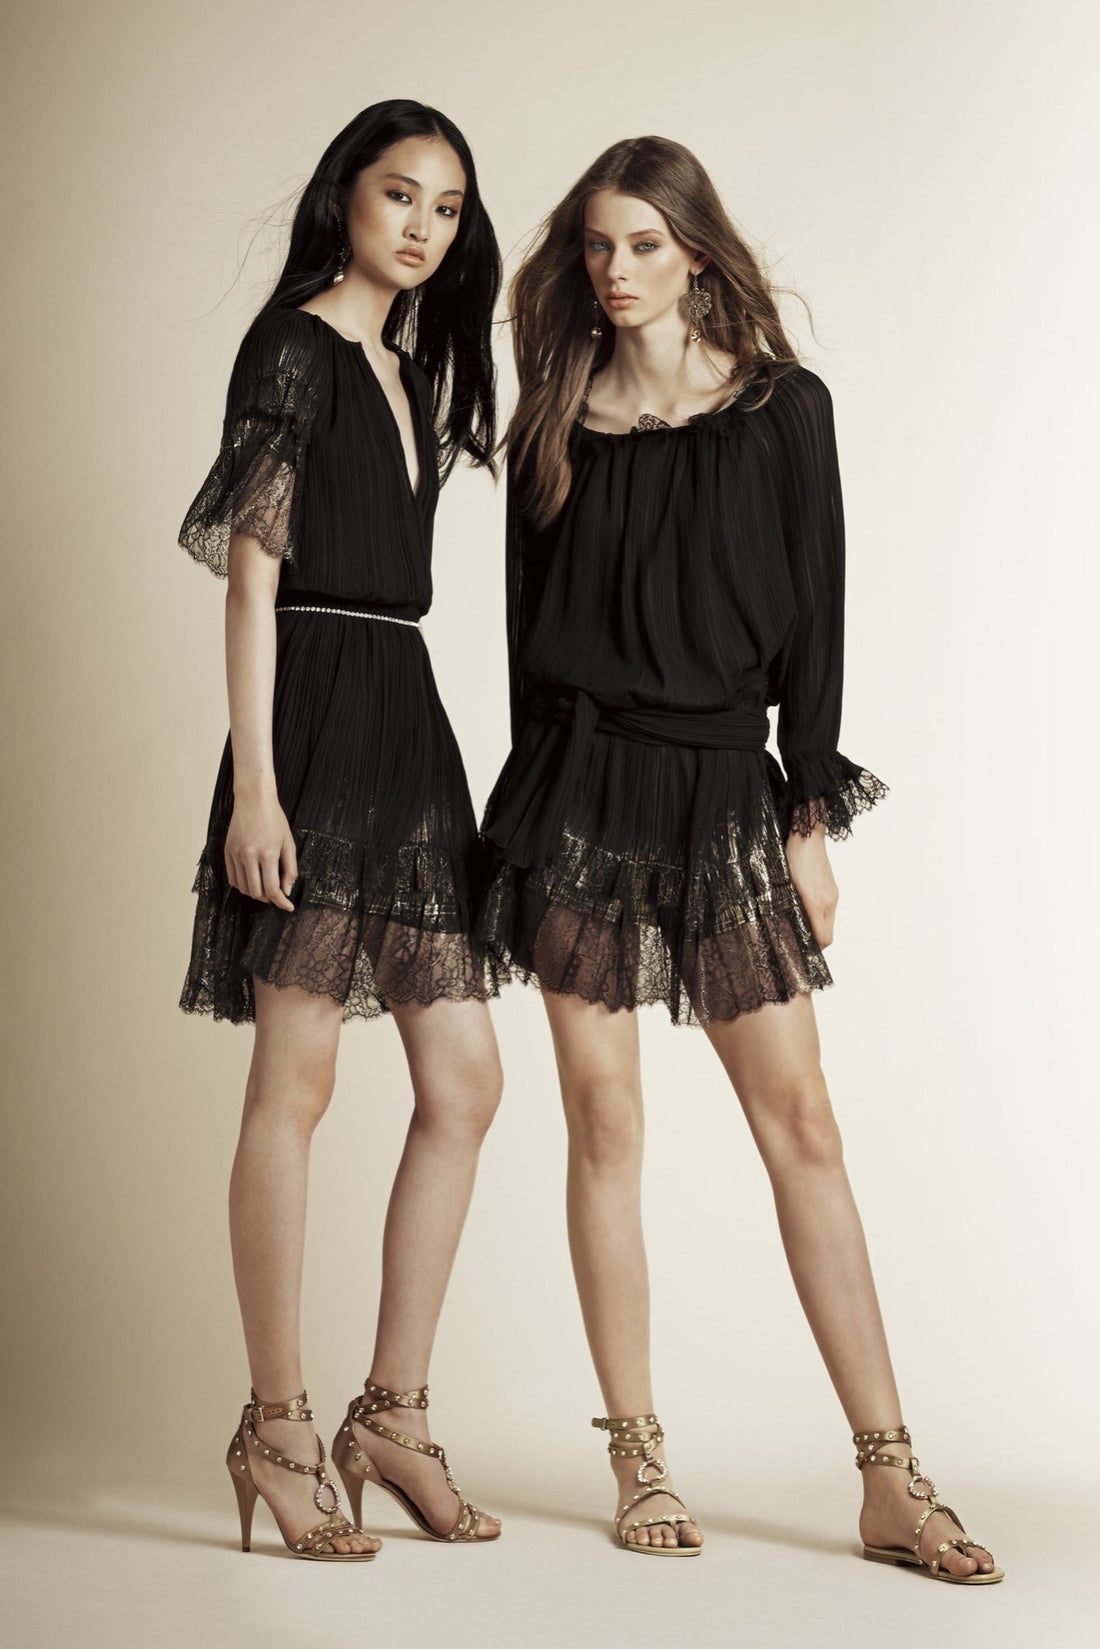 Alberta Ferretti Black Boho Dress with Gold Lace Hem – 8